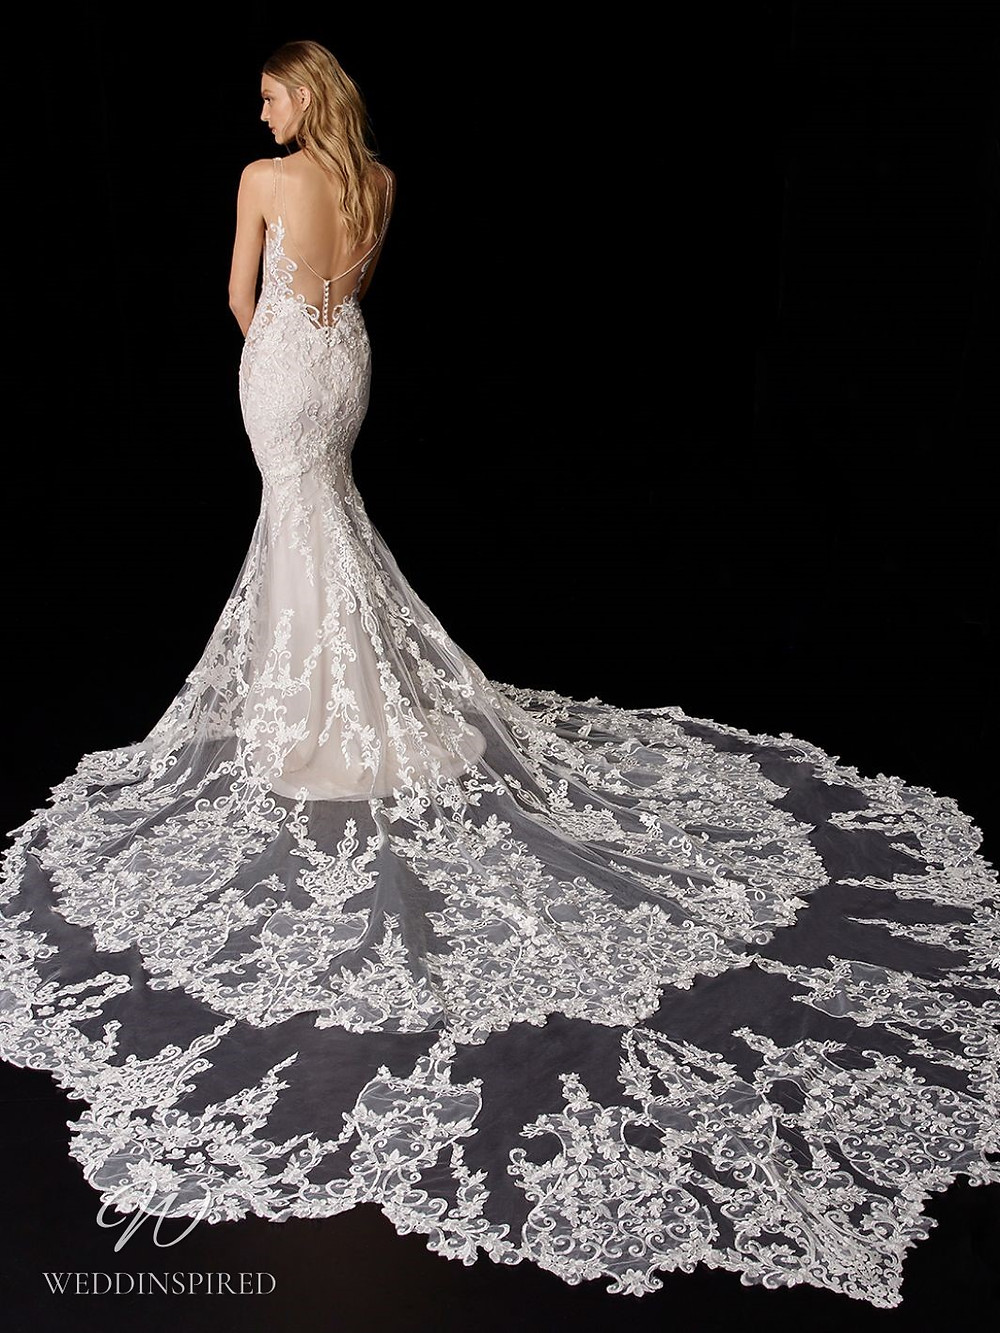 An Enzoani lace mermaid wedding dress with a low back and a long lace illusion train